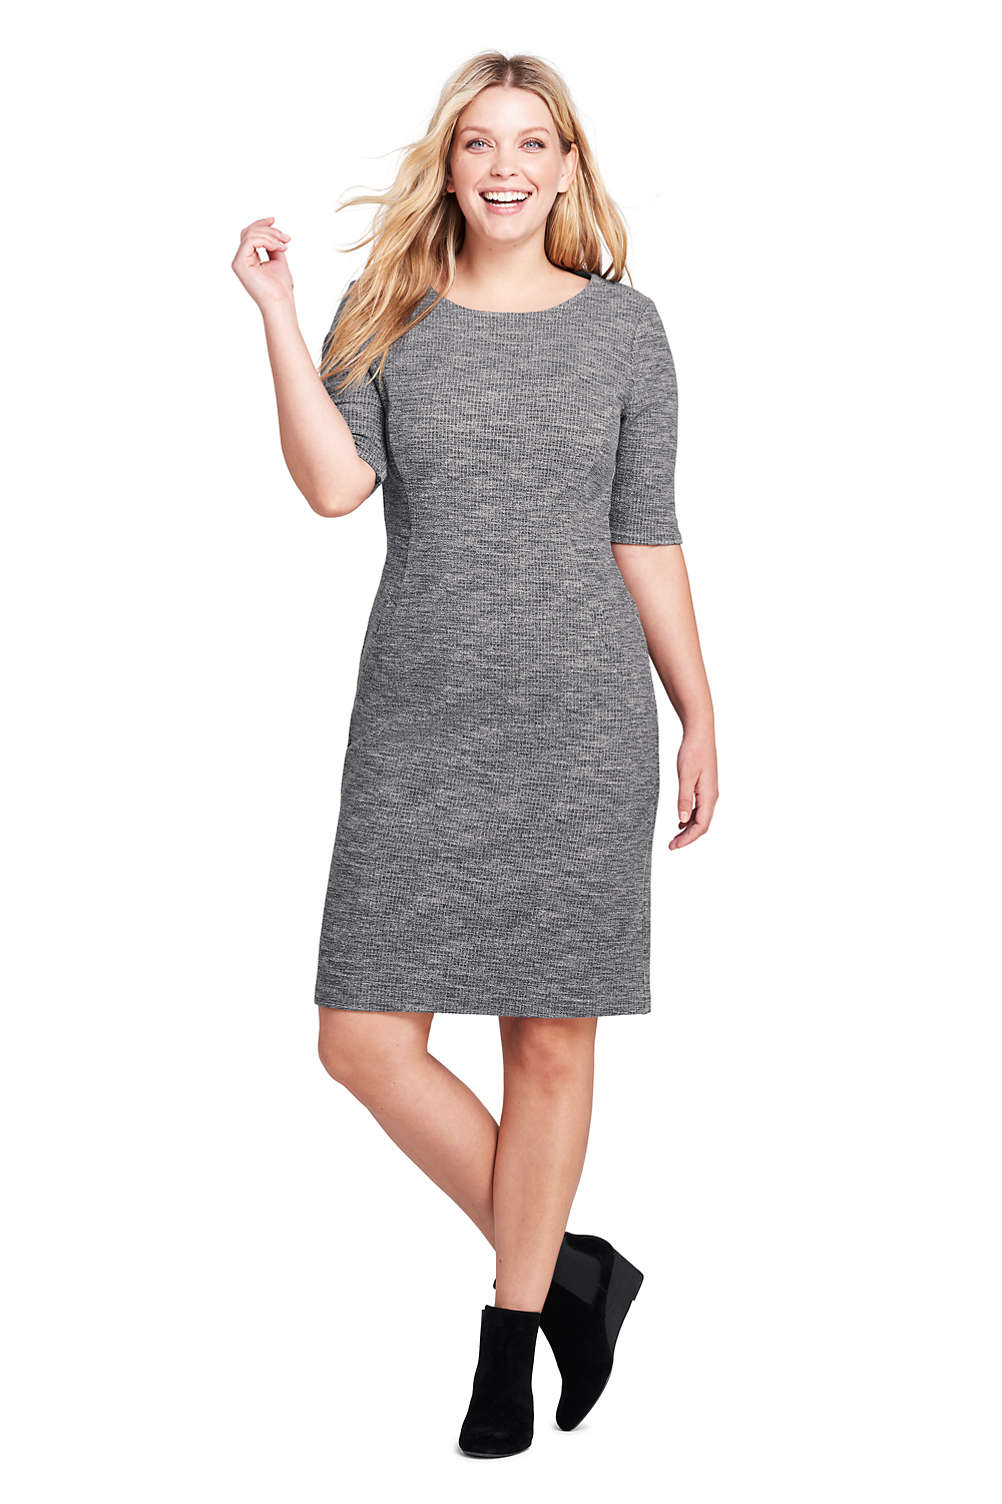 3d0af5f859d73 Women s Plus Size Ponte Knit Sheath Print Dress with Elbow Sleeves from  Lands  End